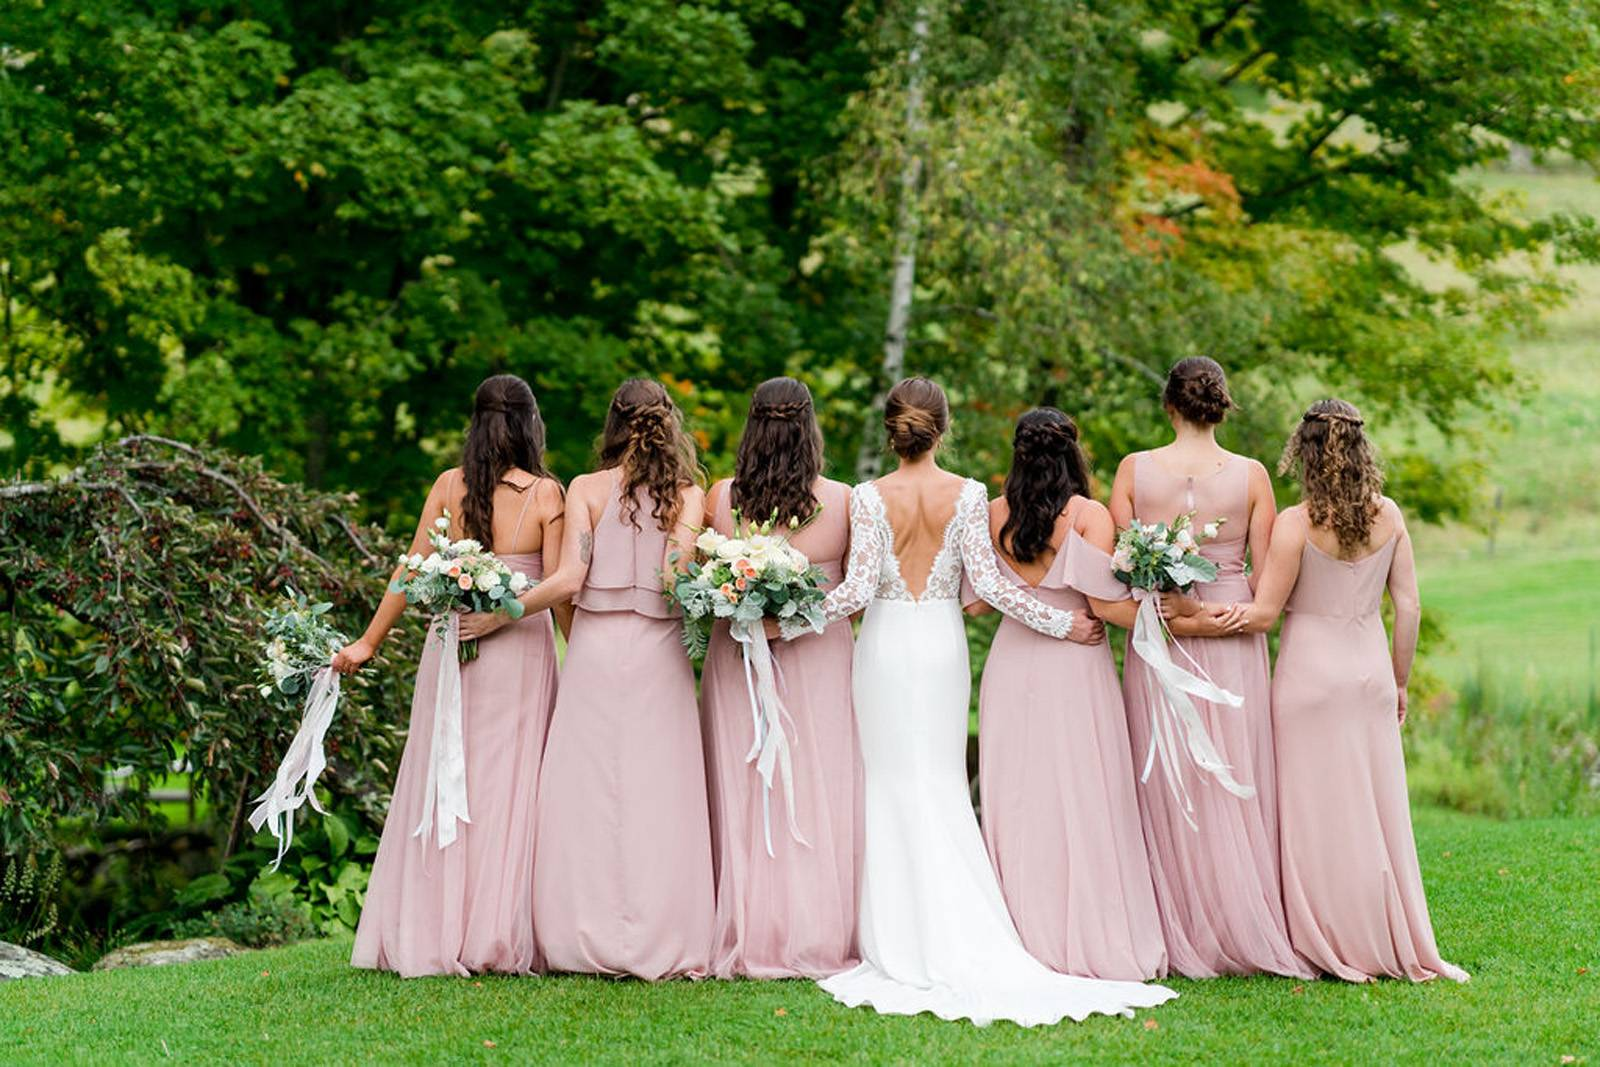 Bride with bridesmaids in blush dresses with bouquets